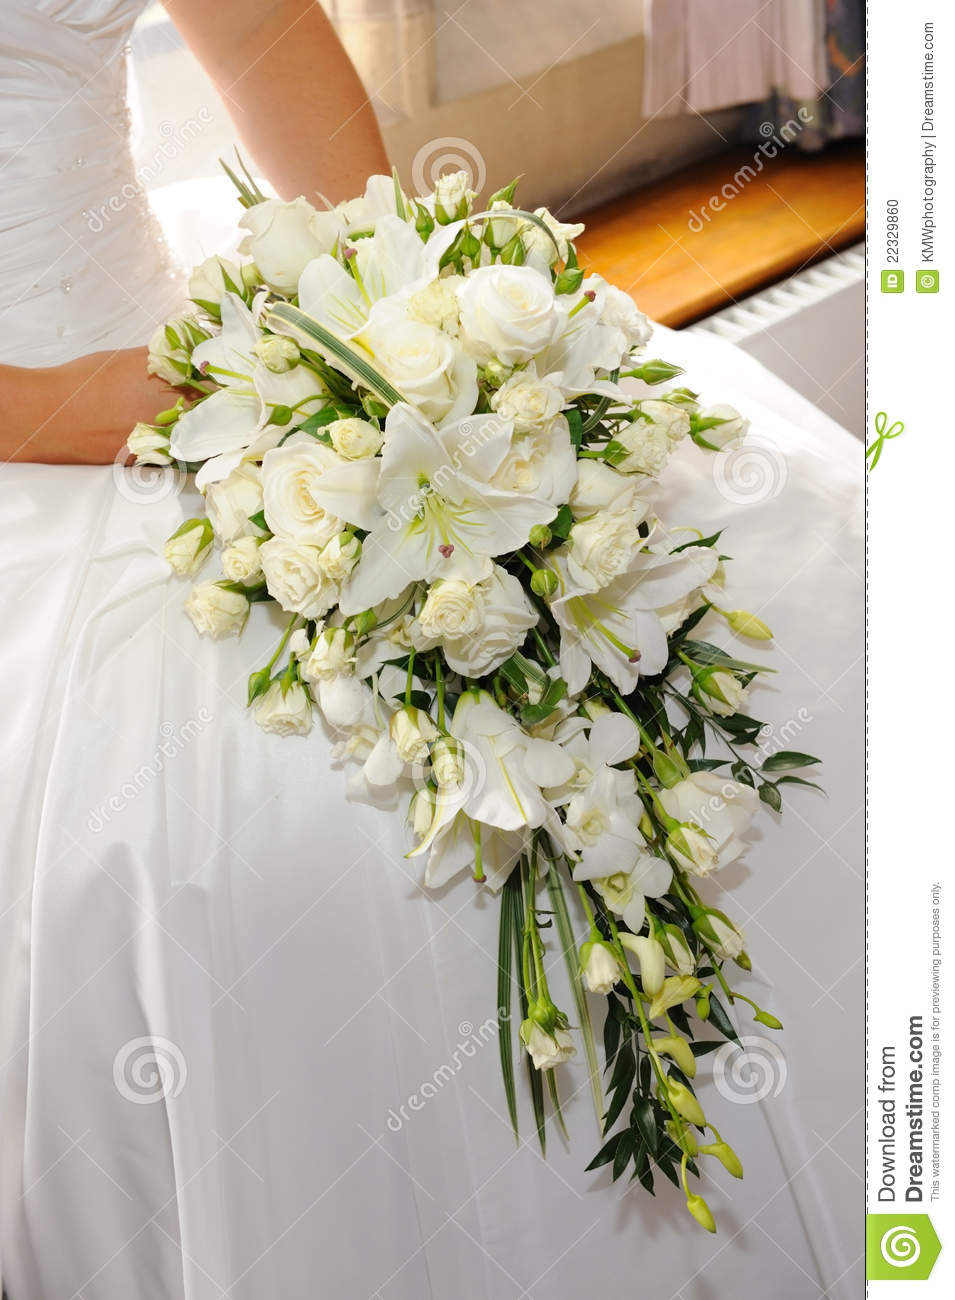 Bouquet Sposa Gigli.Brides White Lilies Stock Photo Image Of Bunch Celebration